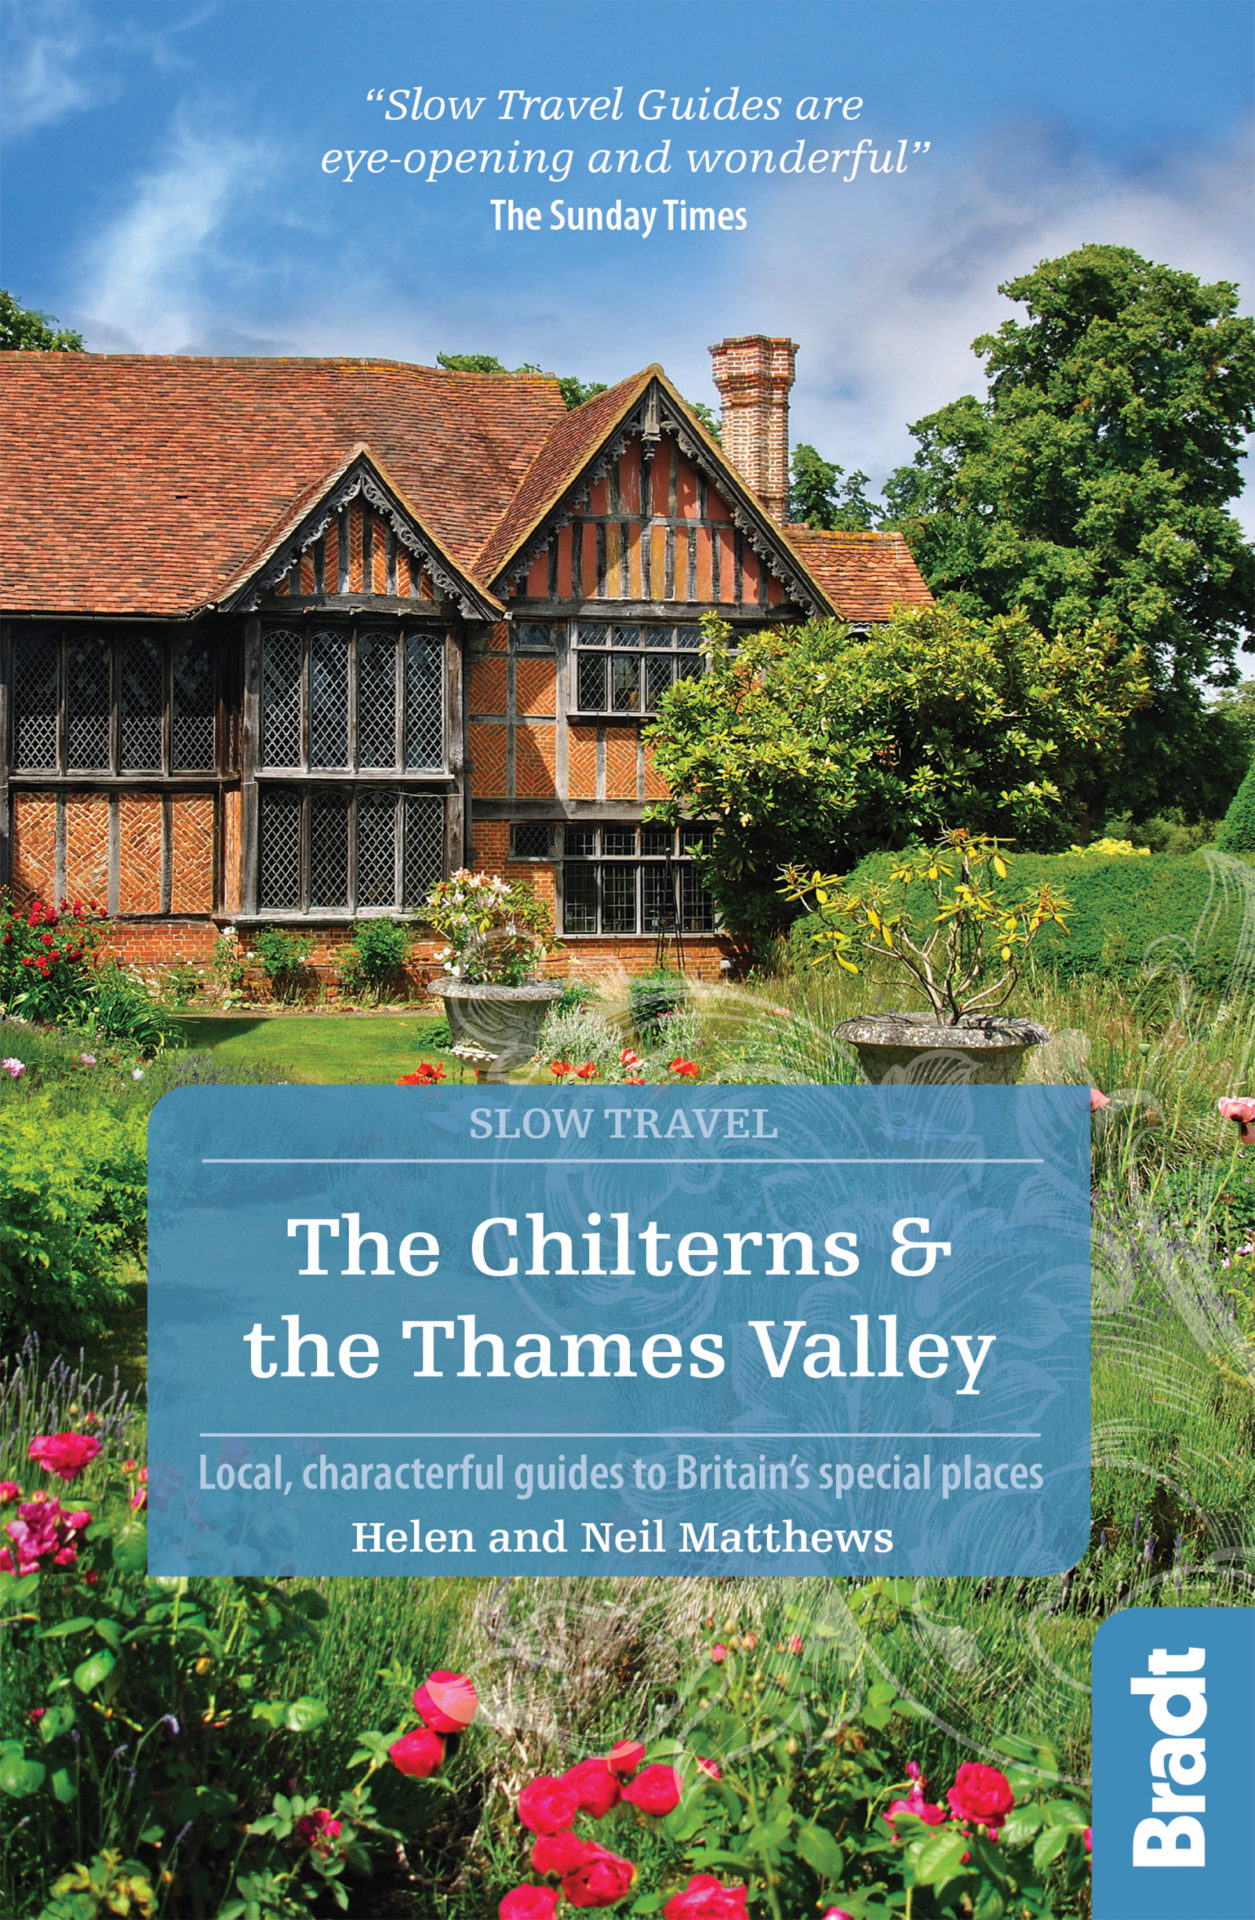 The Chilterns & The Thames Valley (Slow Travel) by Helen & Neil Matthews | 9781784776138